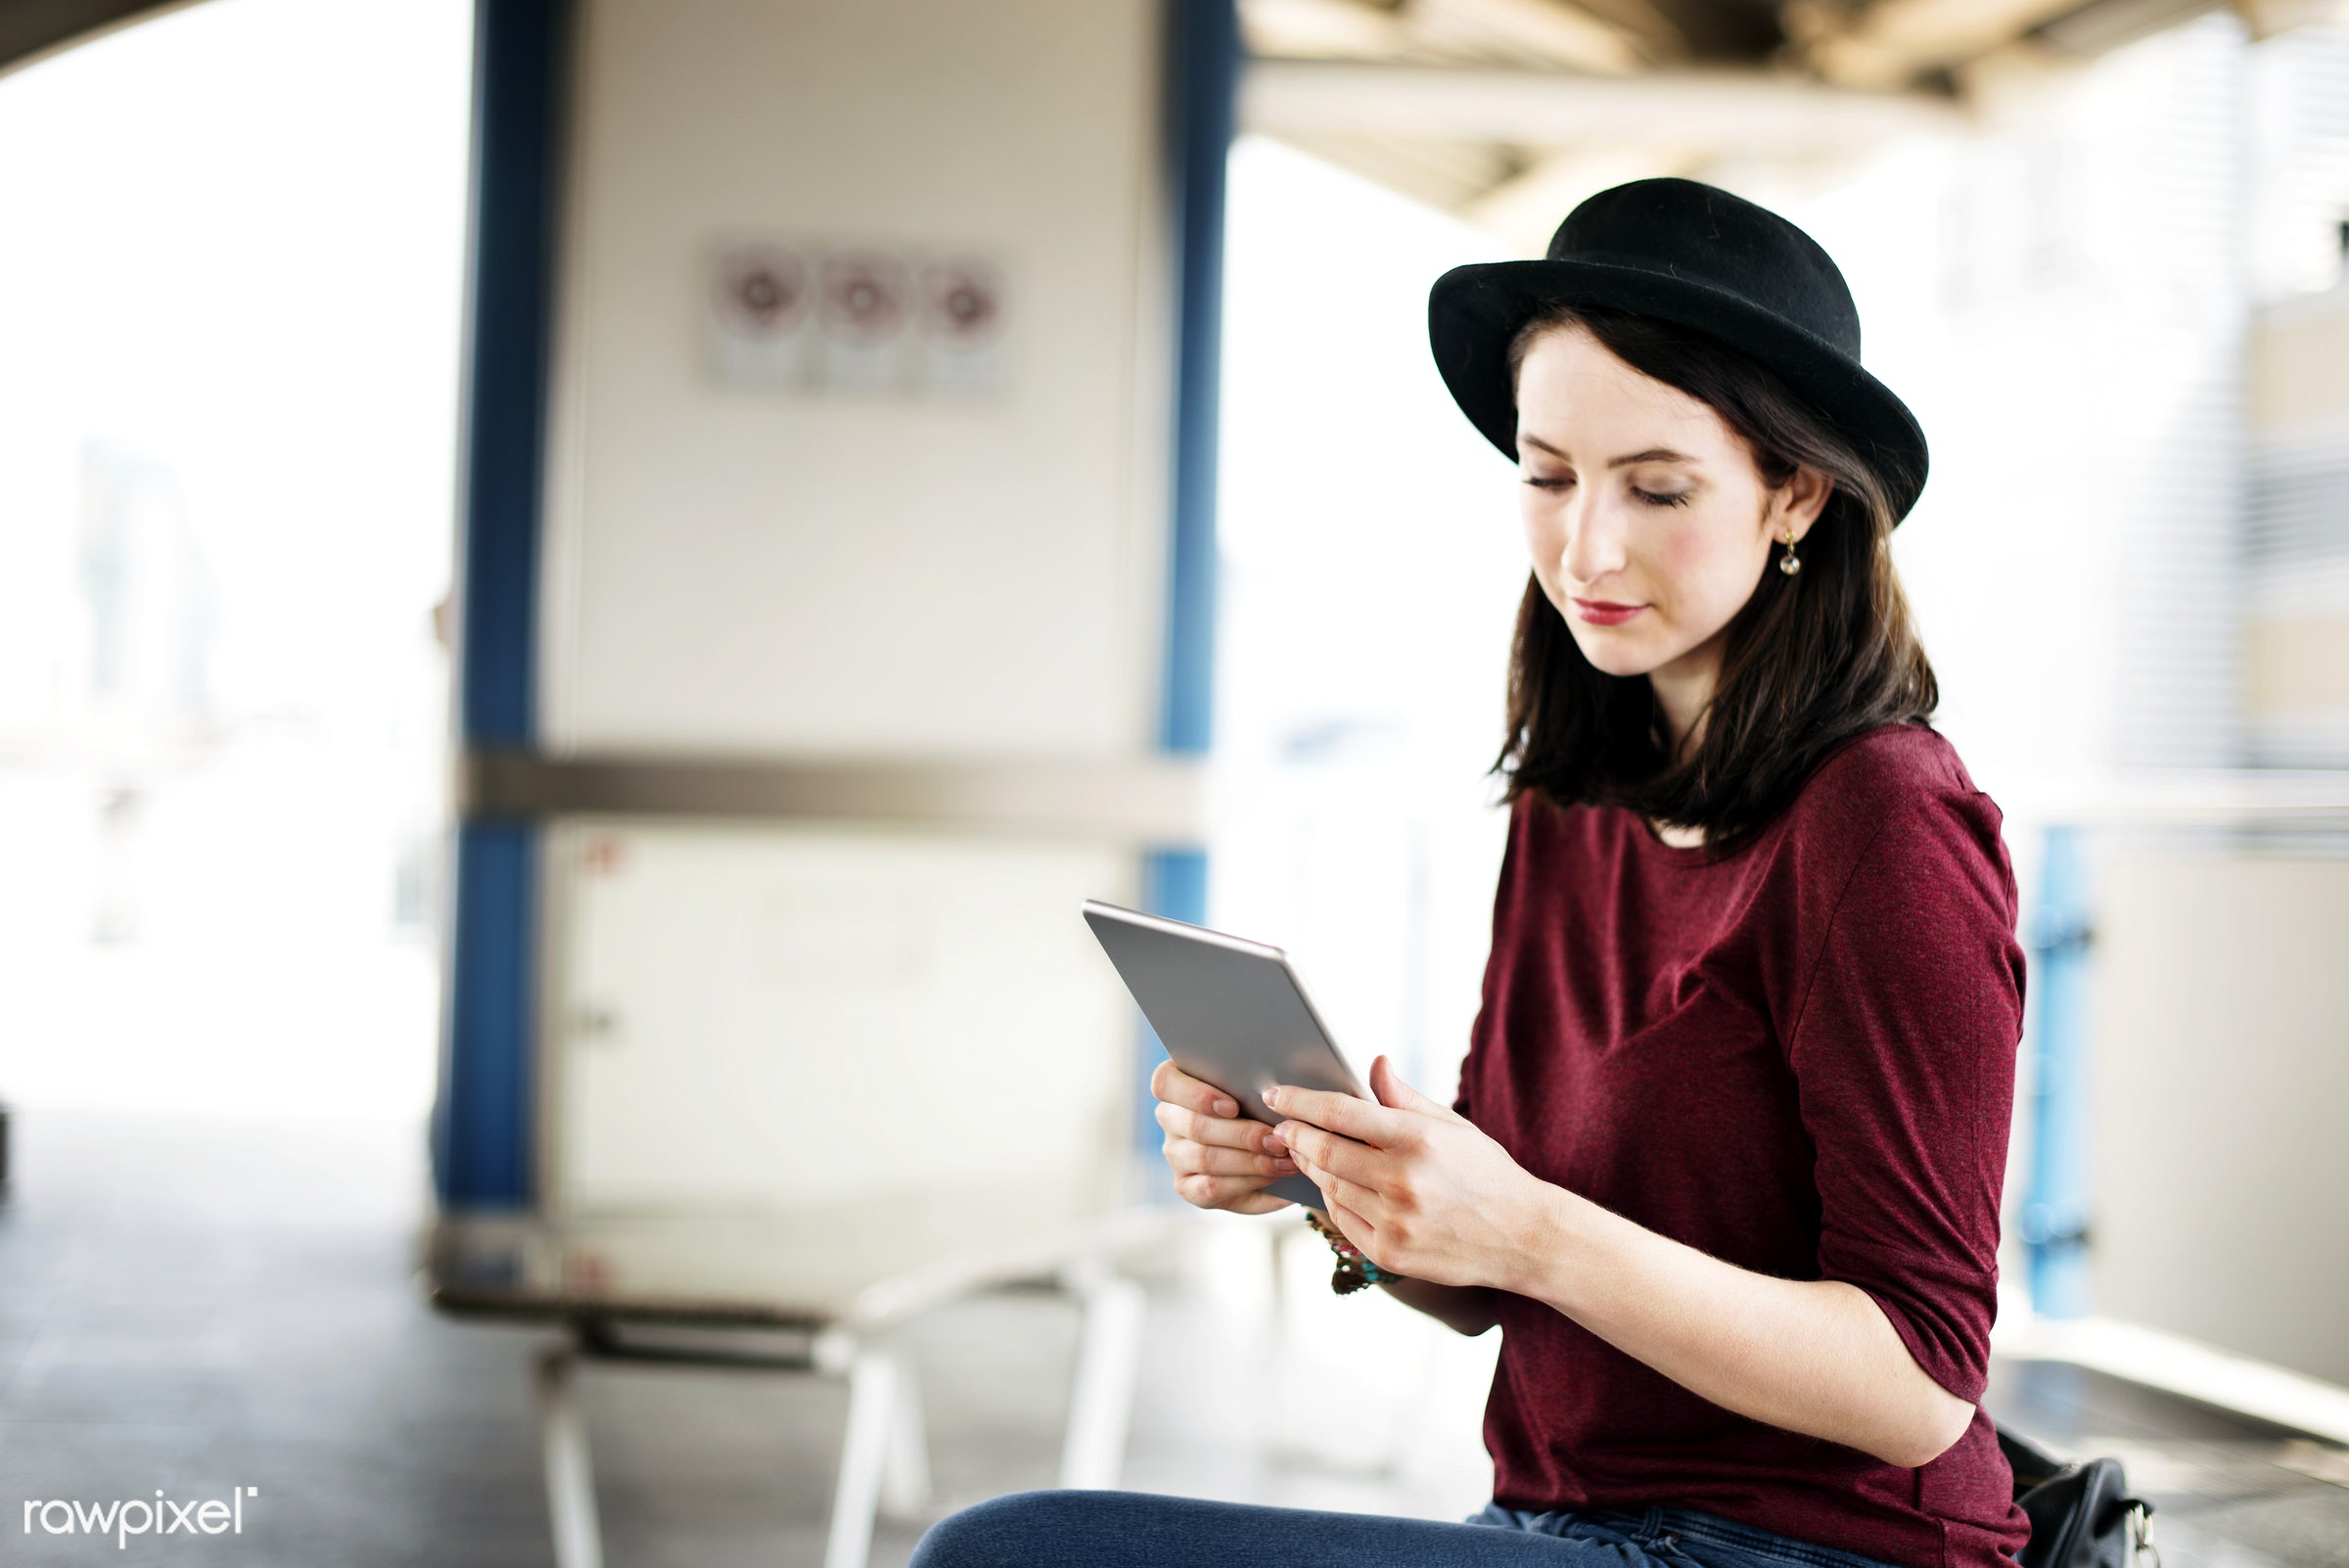 casual, city, city life, commuter, connection, destination, device, digital tablet, girl, holding, information, internet,...